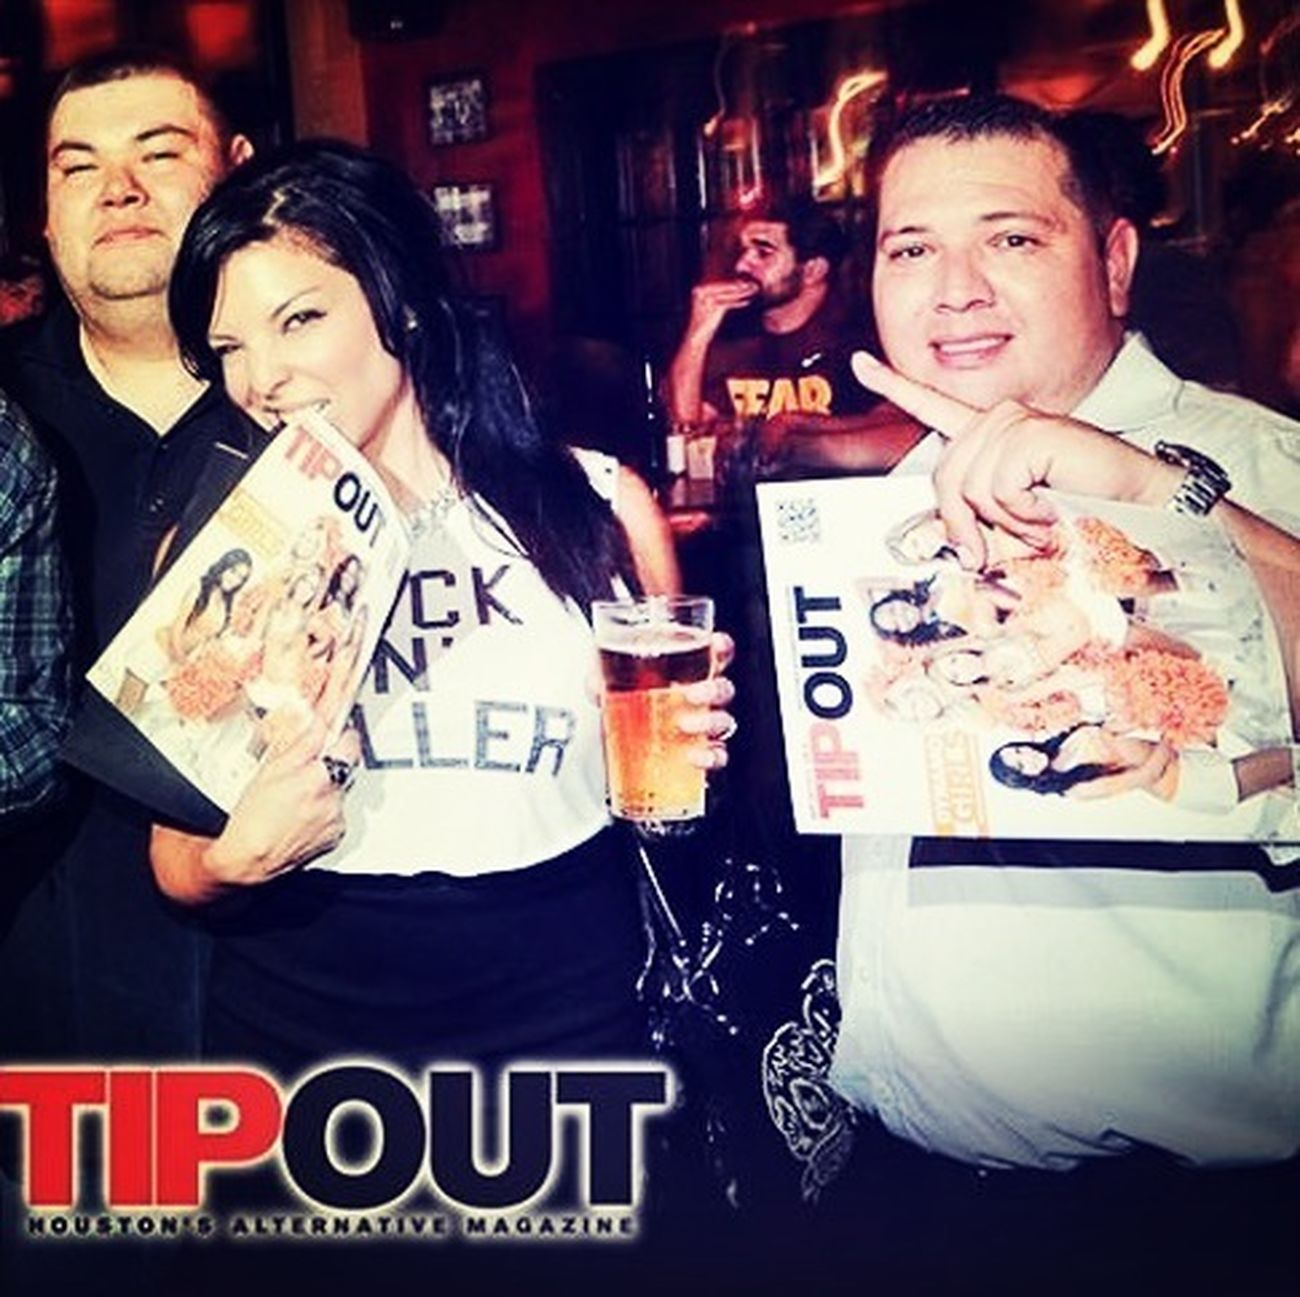 @Tipoutmagazine Re-Launch party! Have you nabbed a copy to read my latest Top5? Do It! XoXo